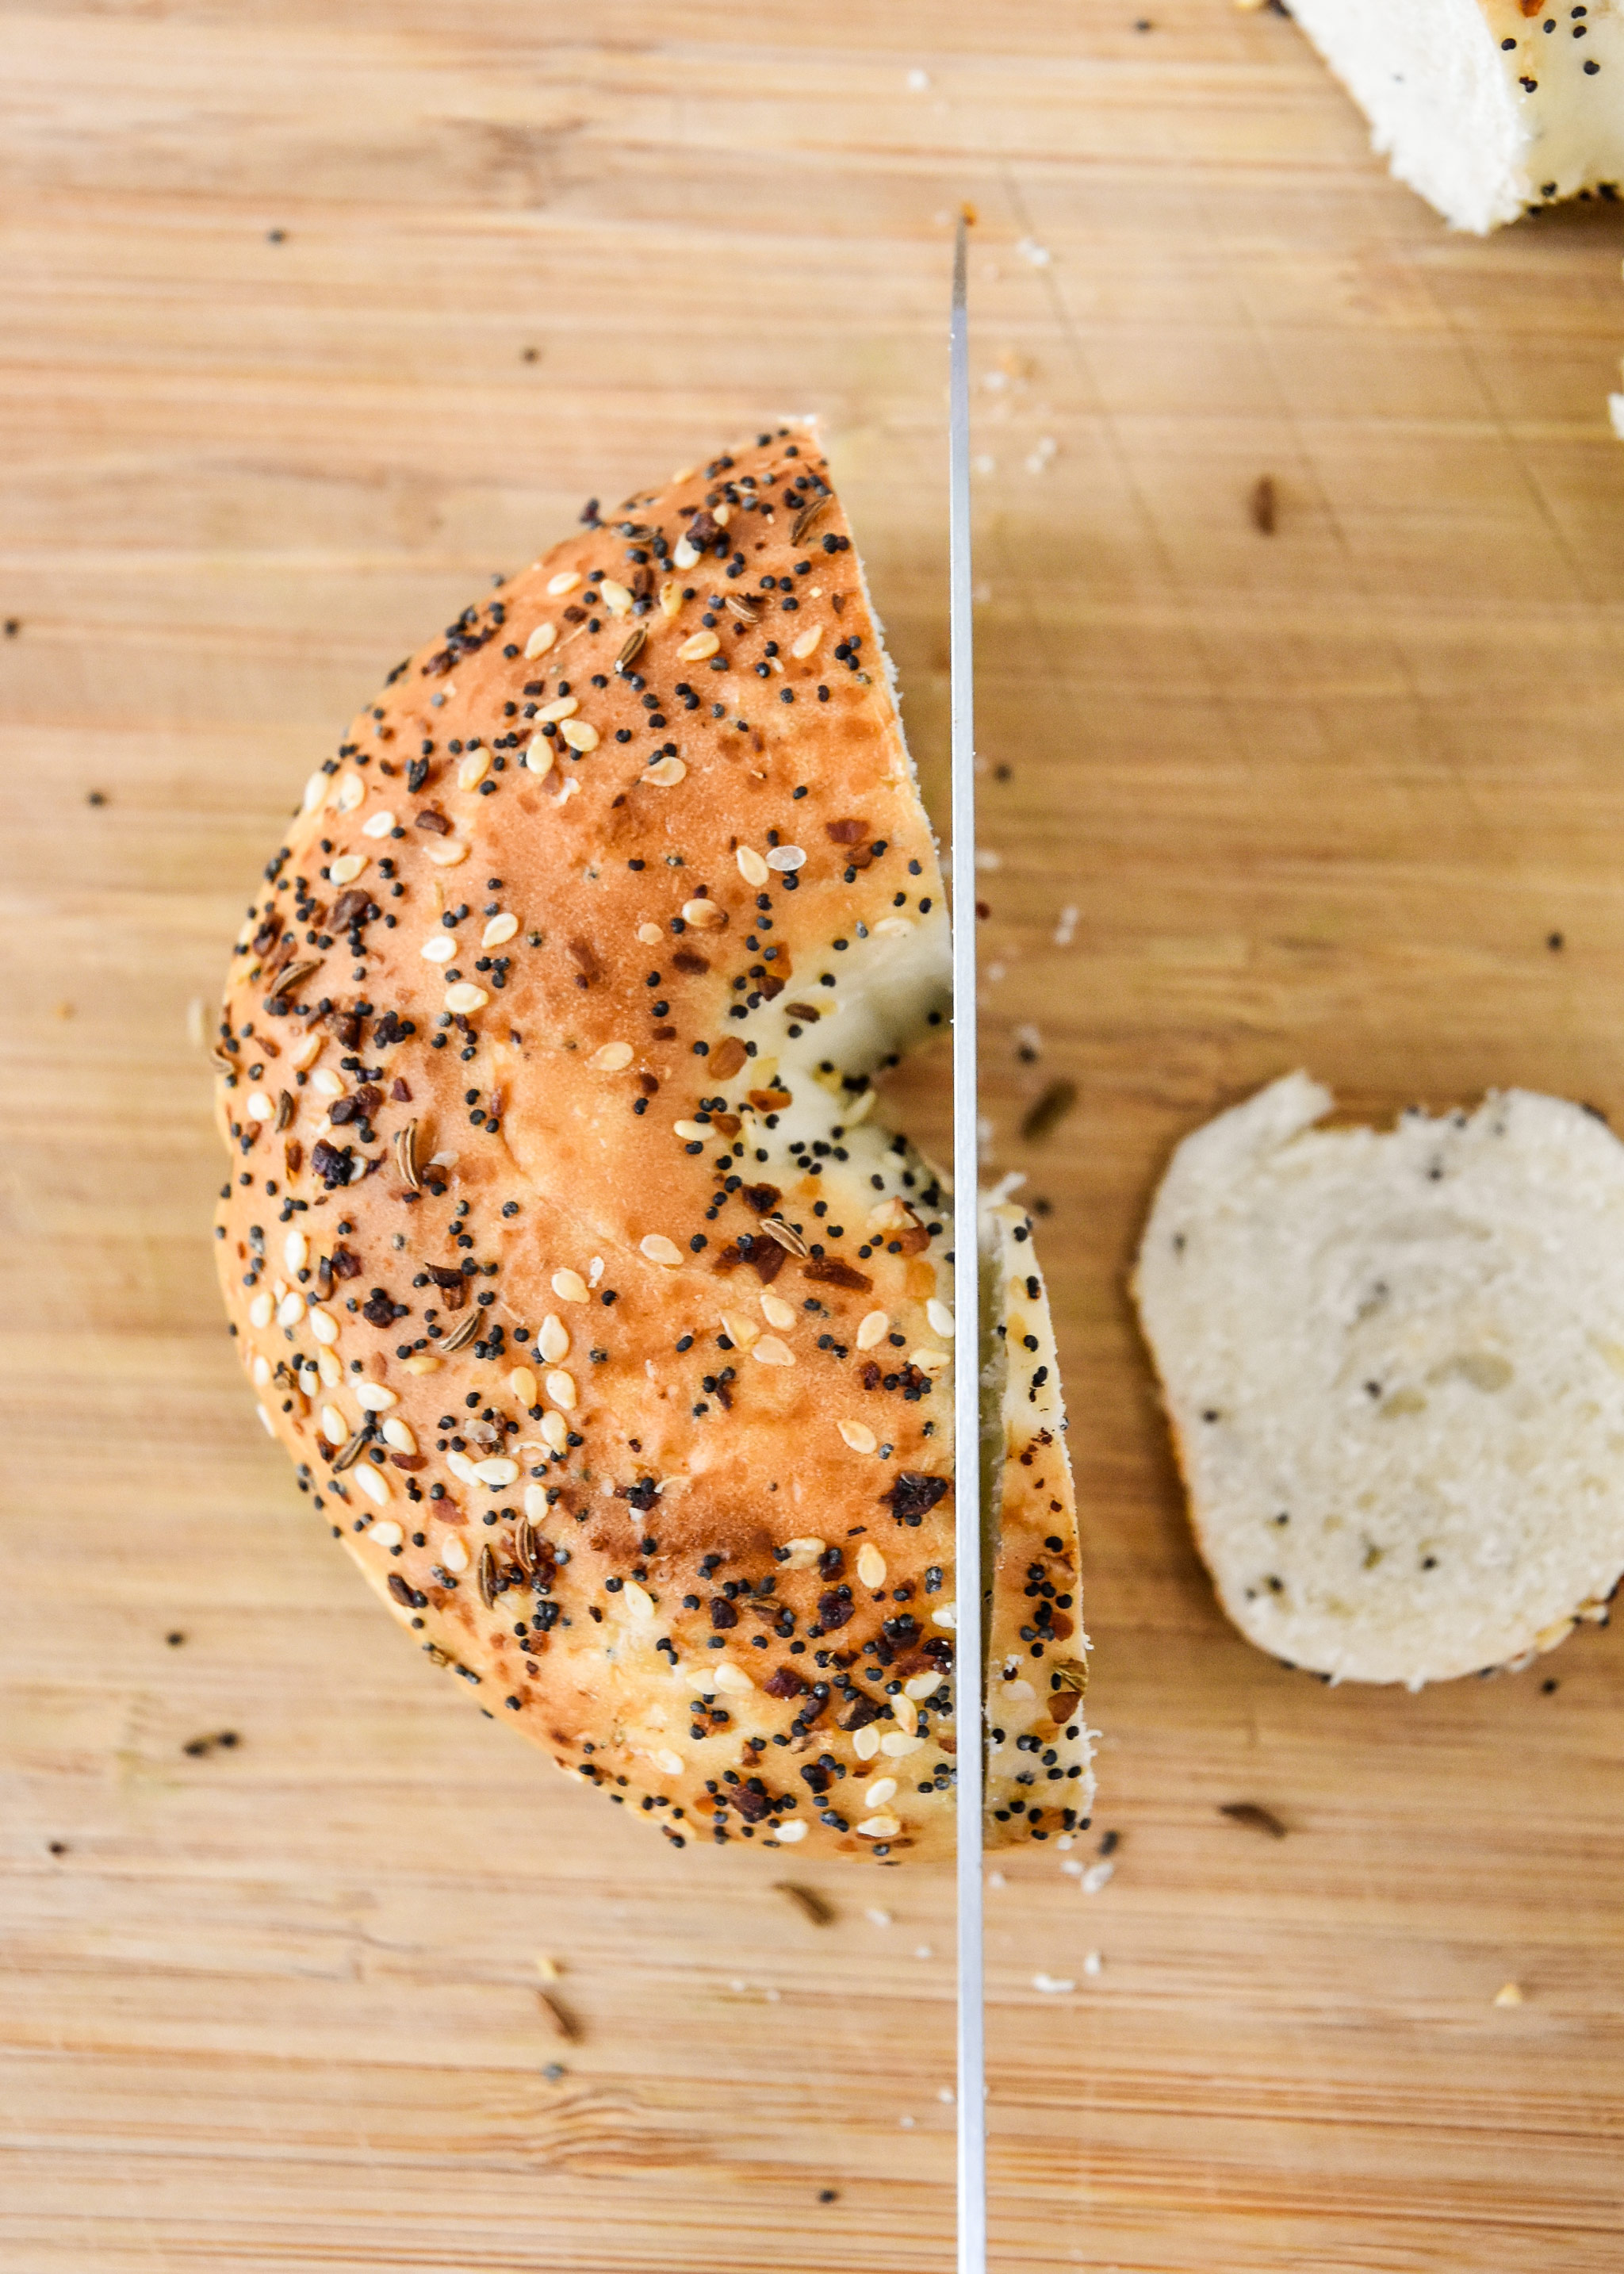 how to cut the bagel with a bread knife.